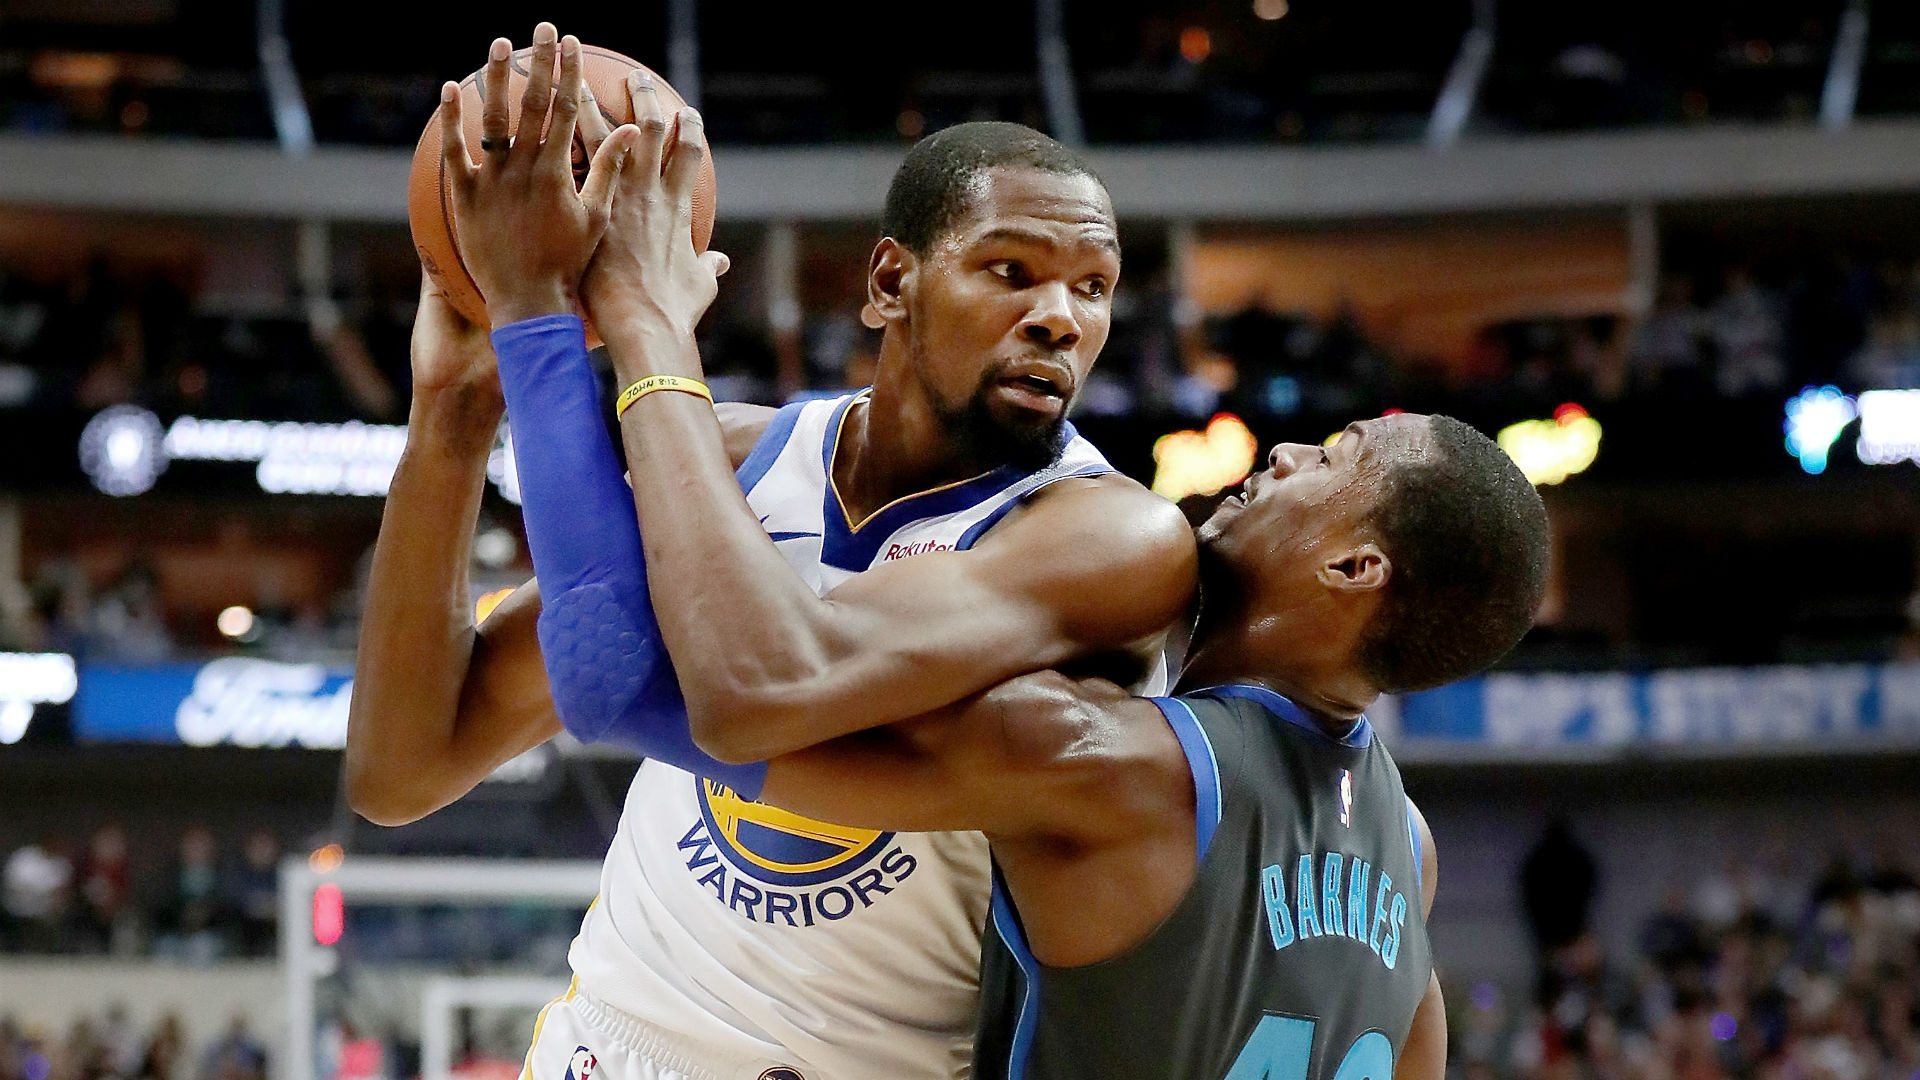 Three takeaways from the Thunder's win over the Warriors on Wednesday